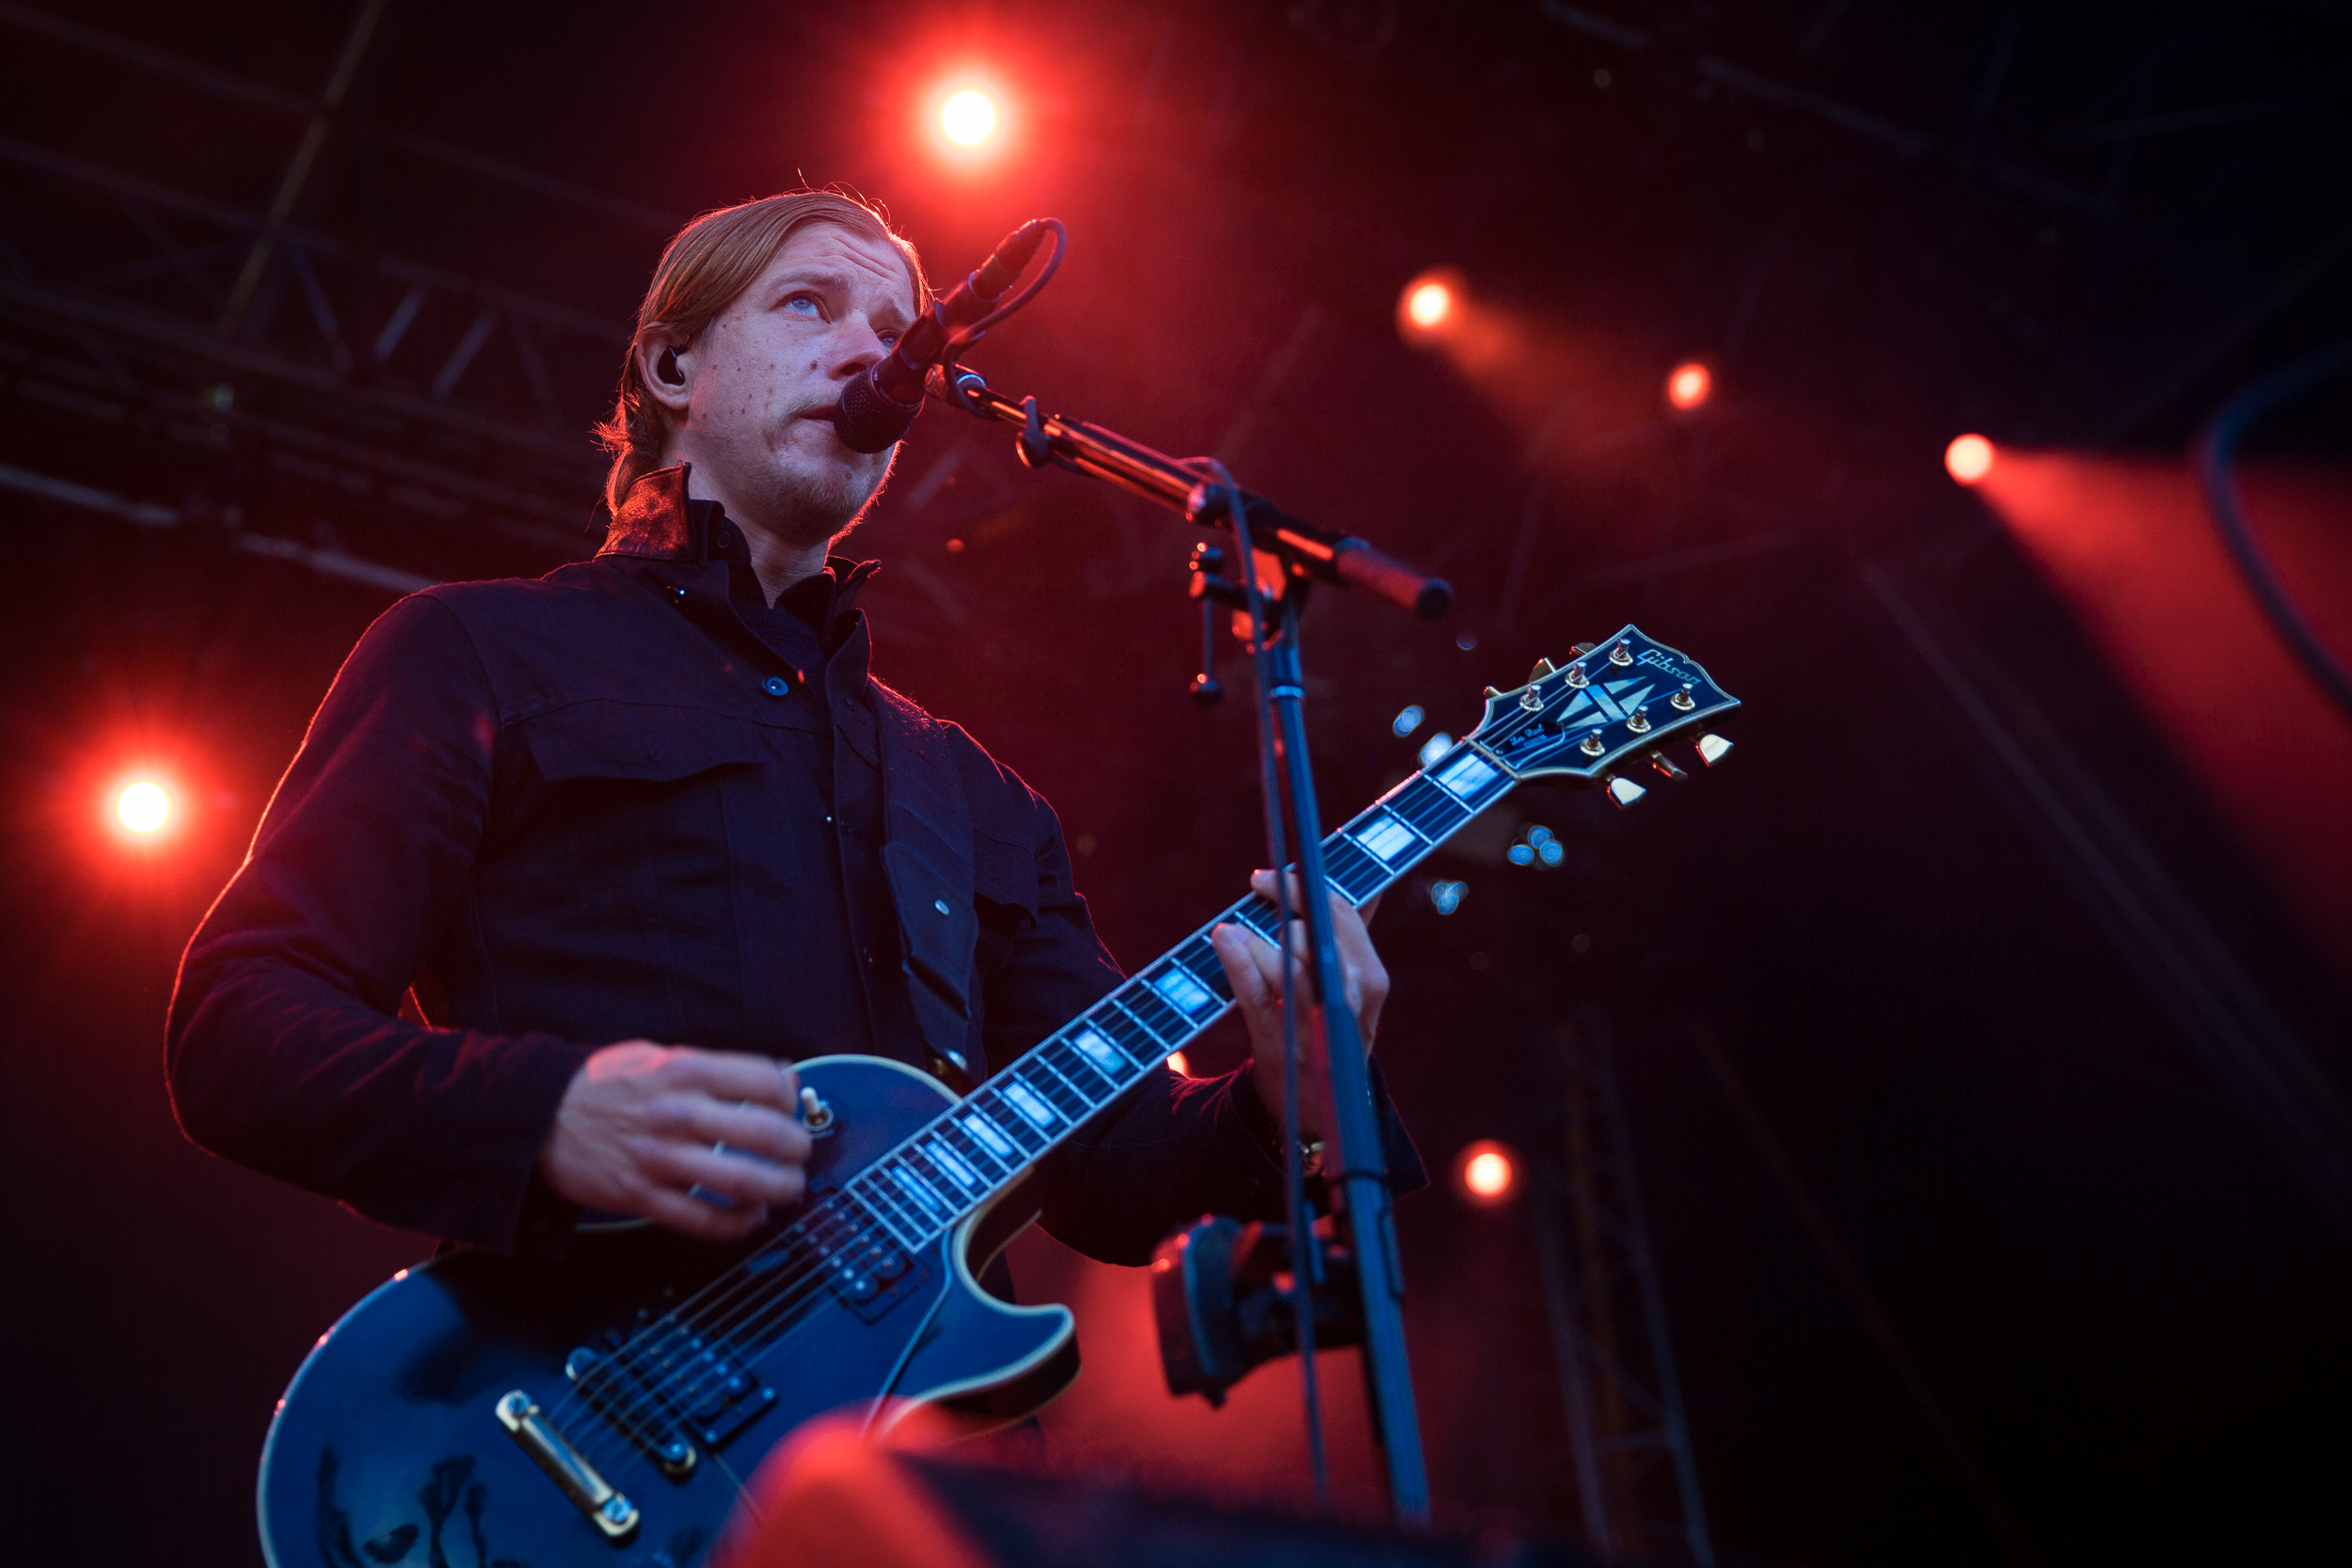 Interpol live at Bergenfest 2015, Bergen.